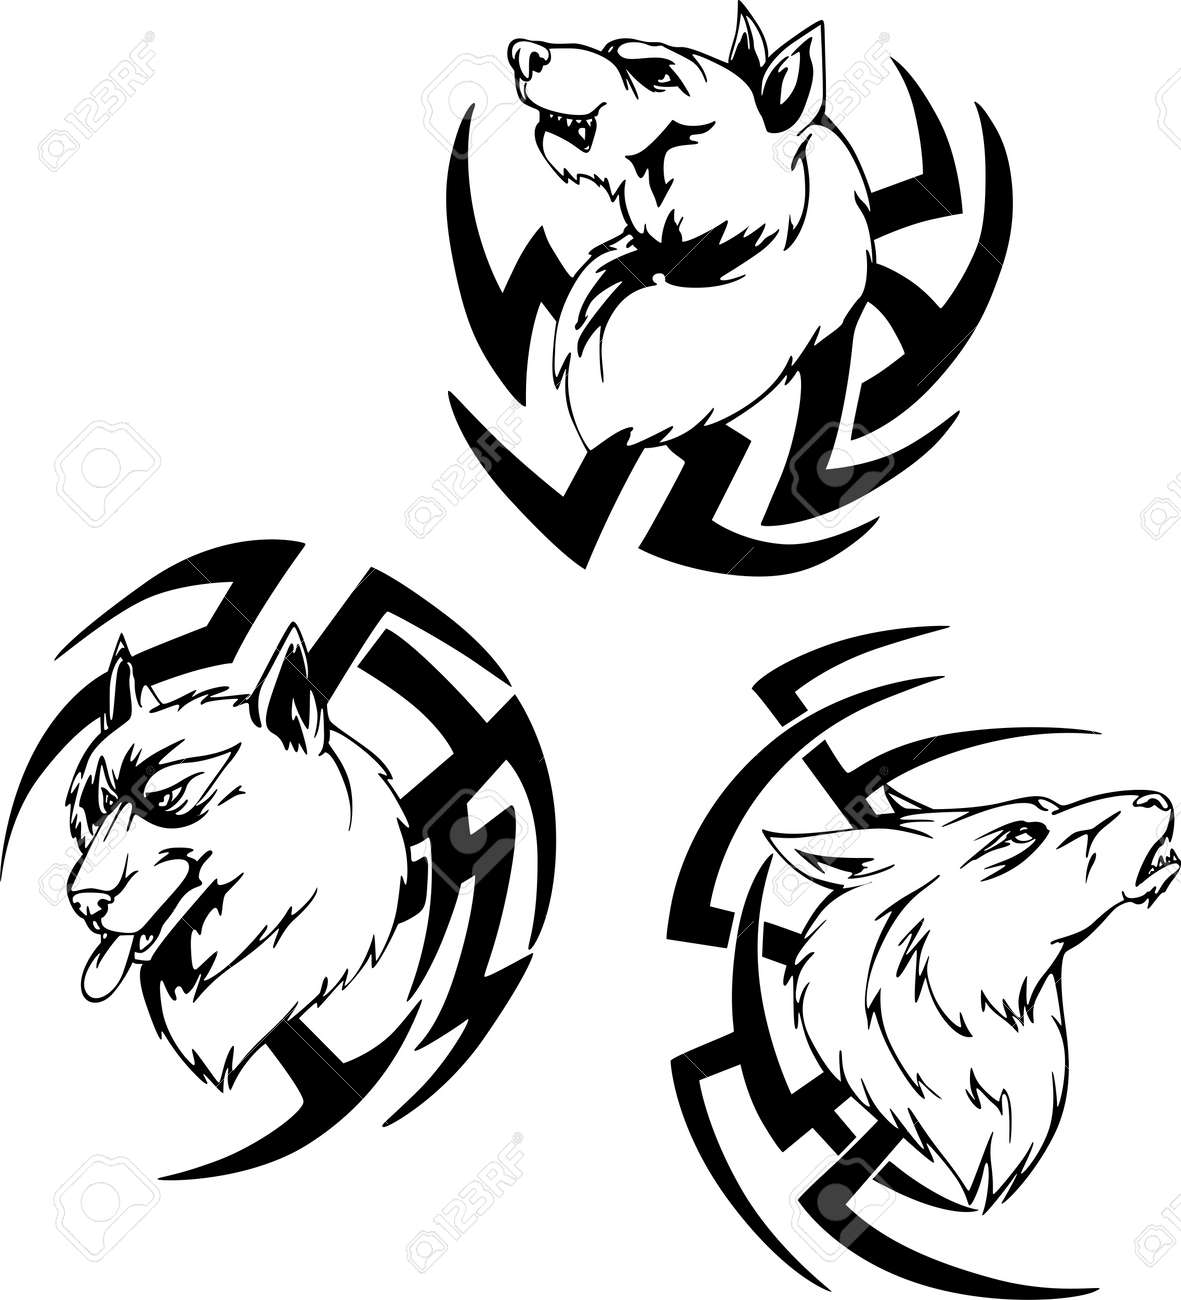 Predator wolf head tattoos set of black and white vector illustrations stock vector